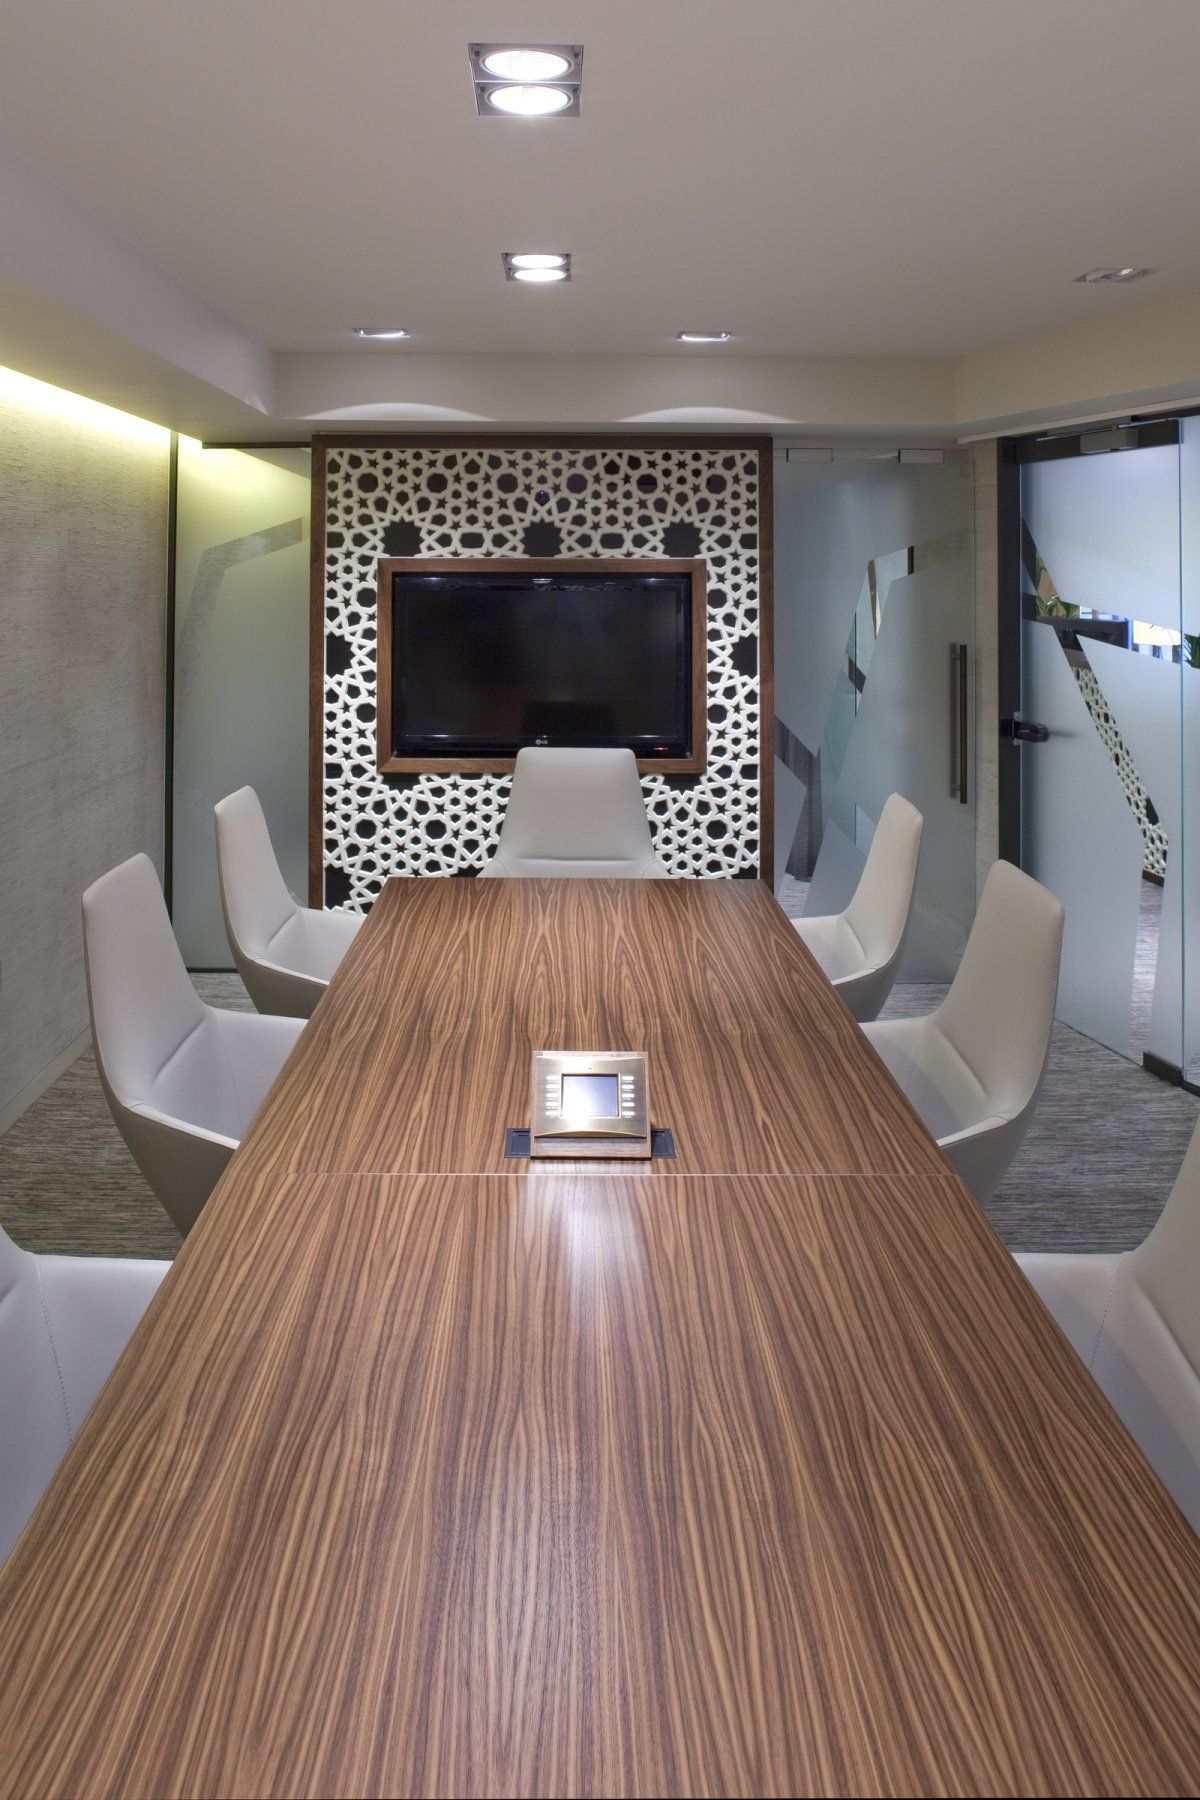 Conference Room Interior Design: Interior-affordable-conference-room-design-with